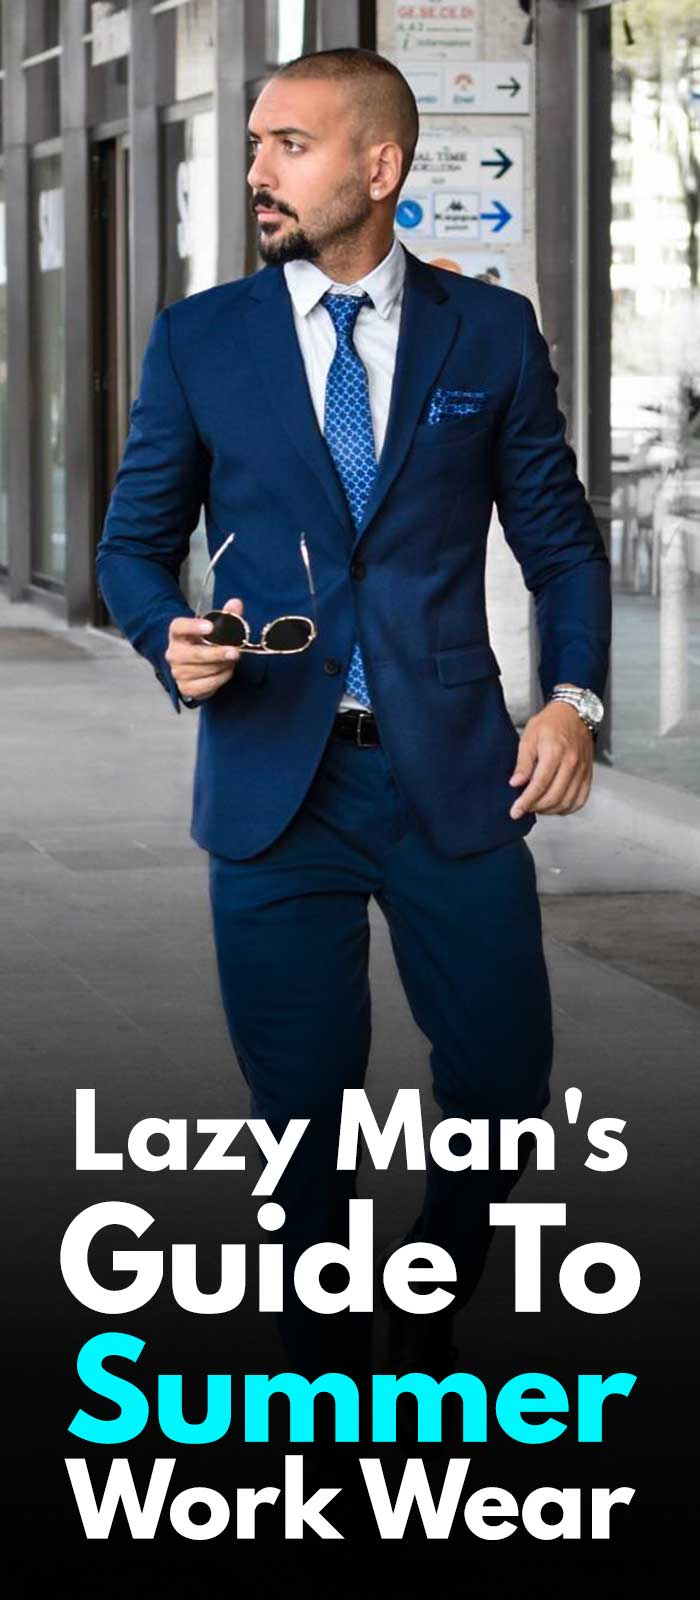 Lazy Man's Guide To Summer Work Wear!